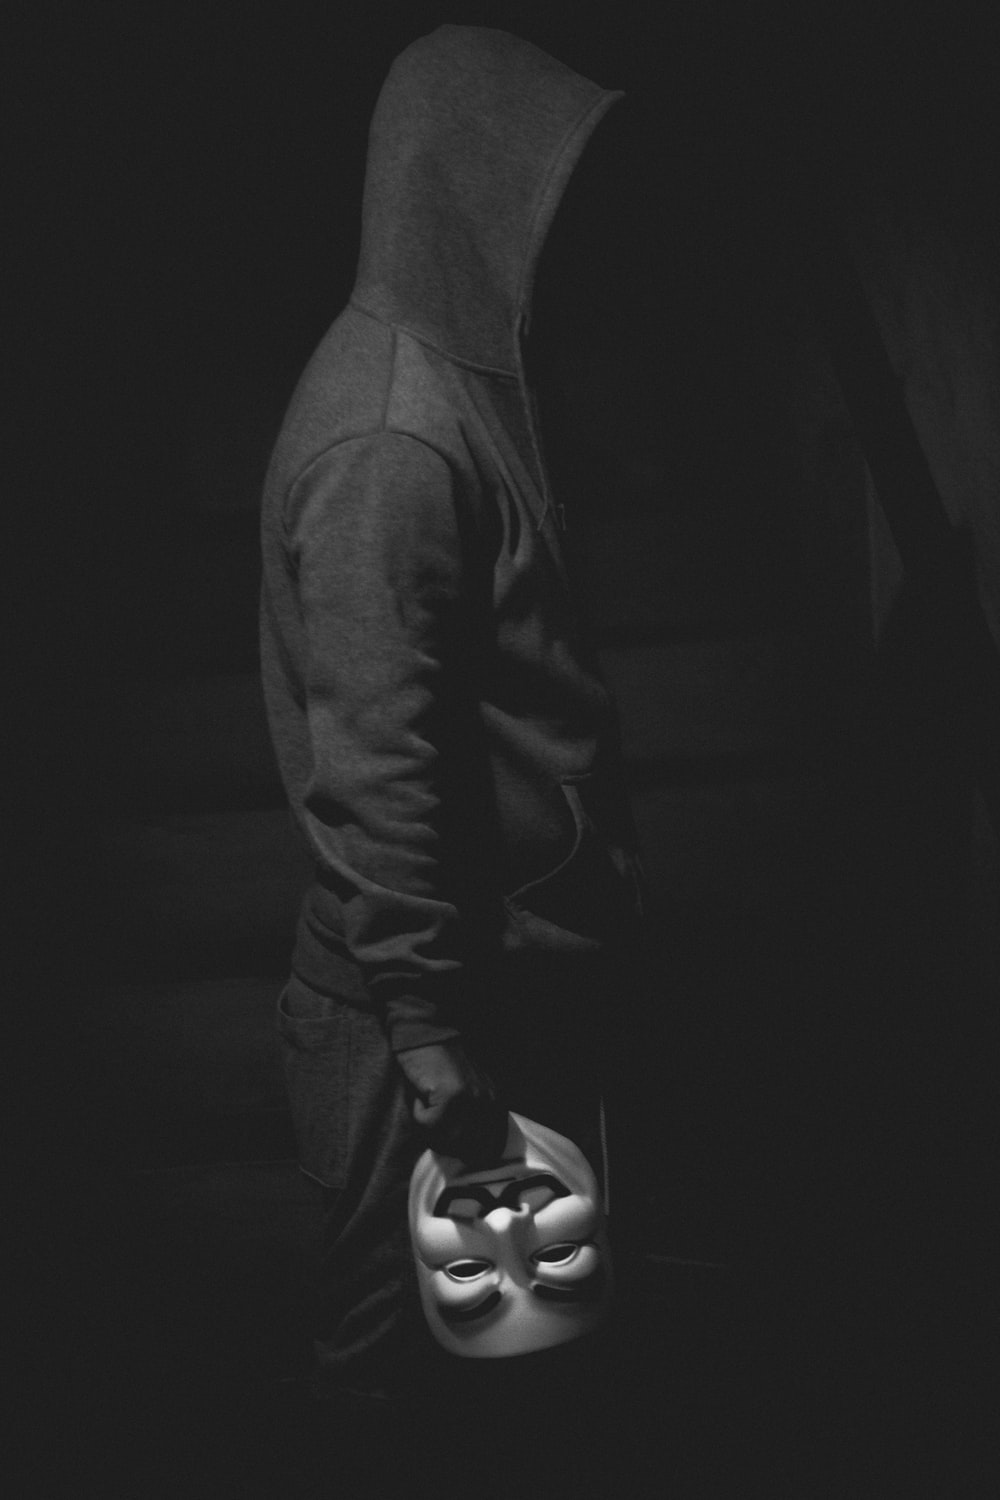 standing man holding Guy Fawkes mask